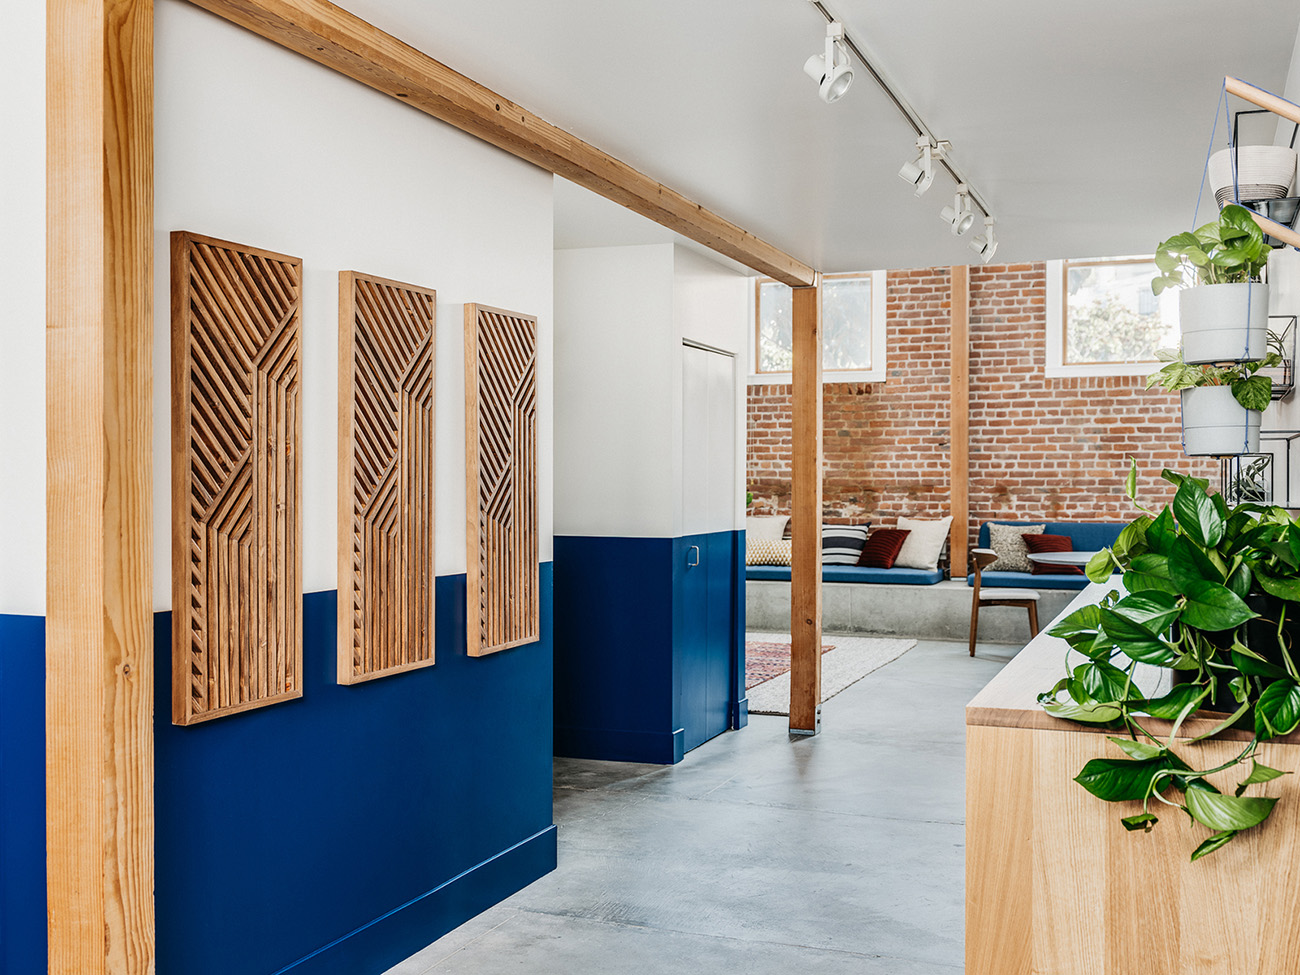 A Look Inside Wave Capital's Eclectic Office in San Francisco